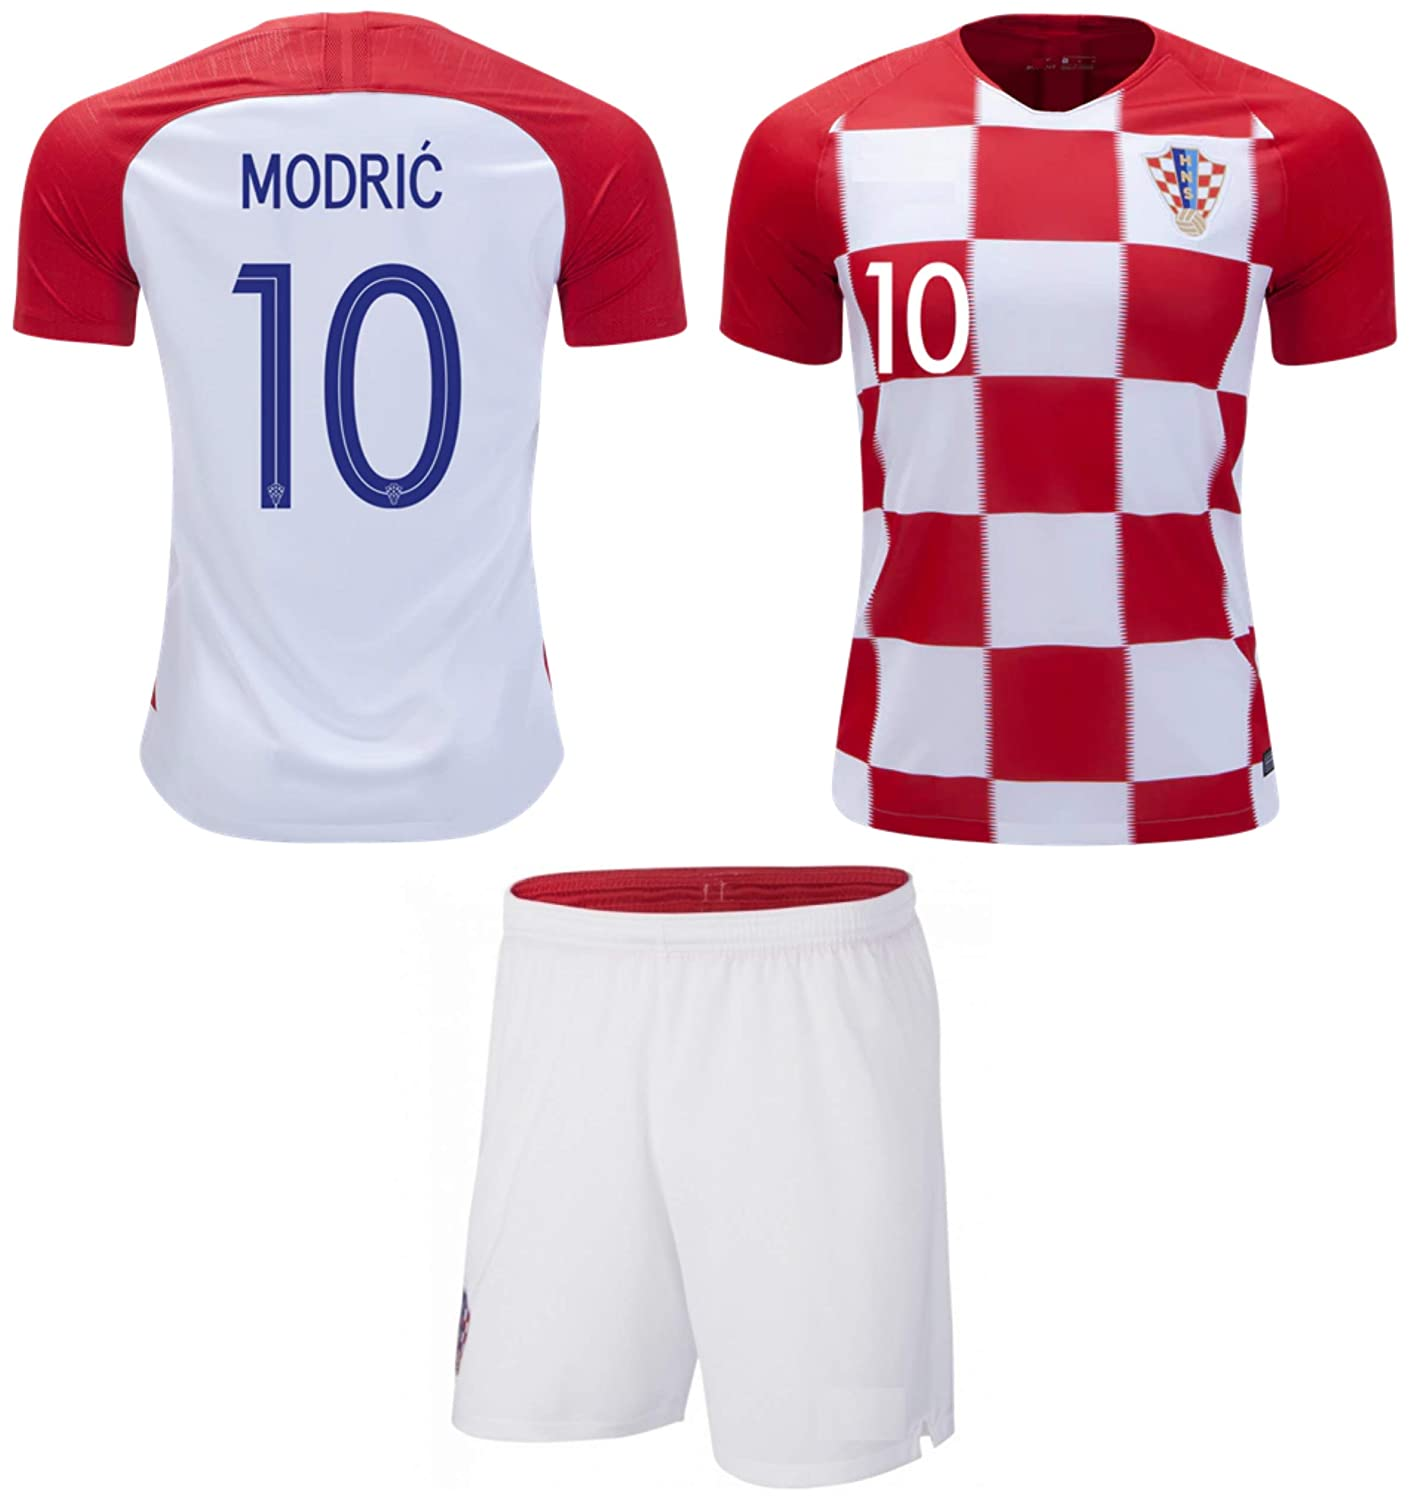 Croatia Modric #10 Soccer Jersey Youth World Cup Home Short Sleeve with Shorts Kit Kids Soccer Set Fanzz Sport